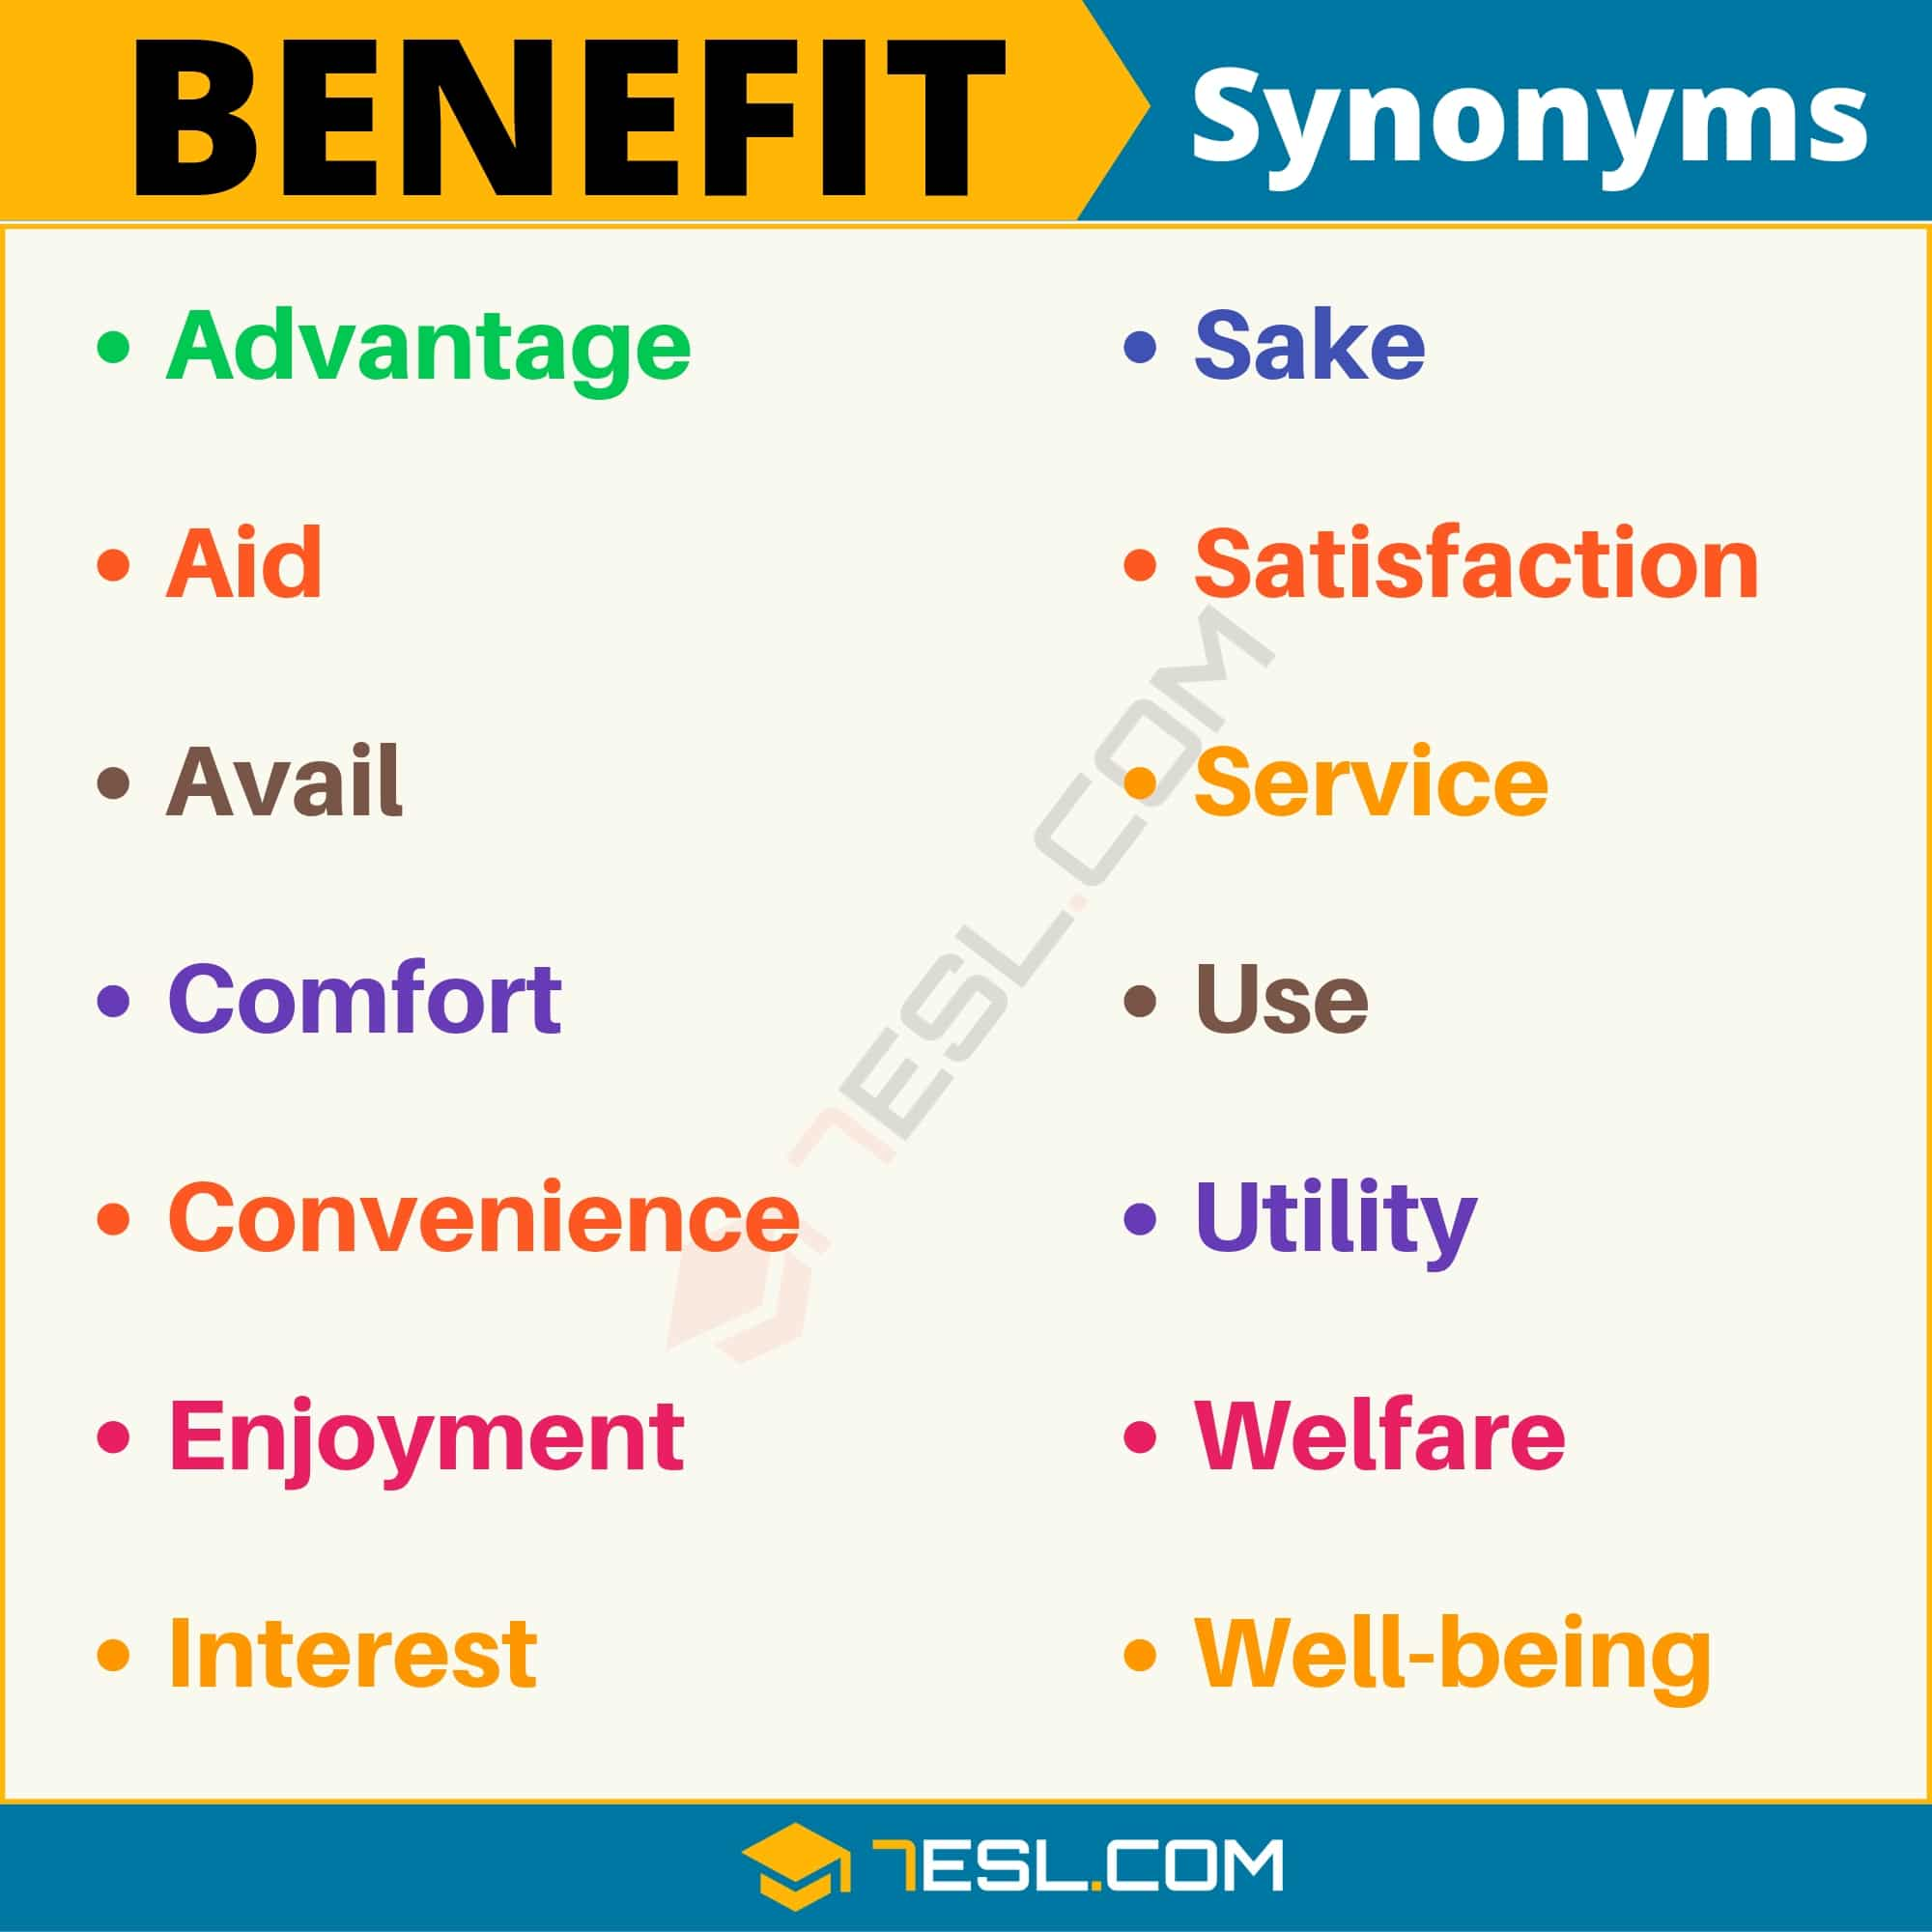 BENEFIT Synonym: List of 14 Synonyms for Benefit (with Useful Examples)